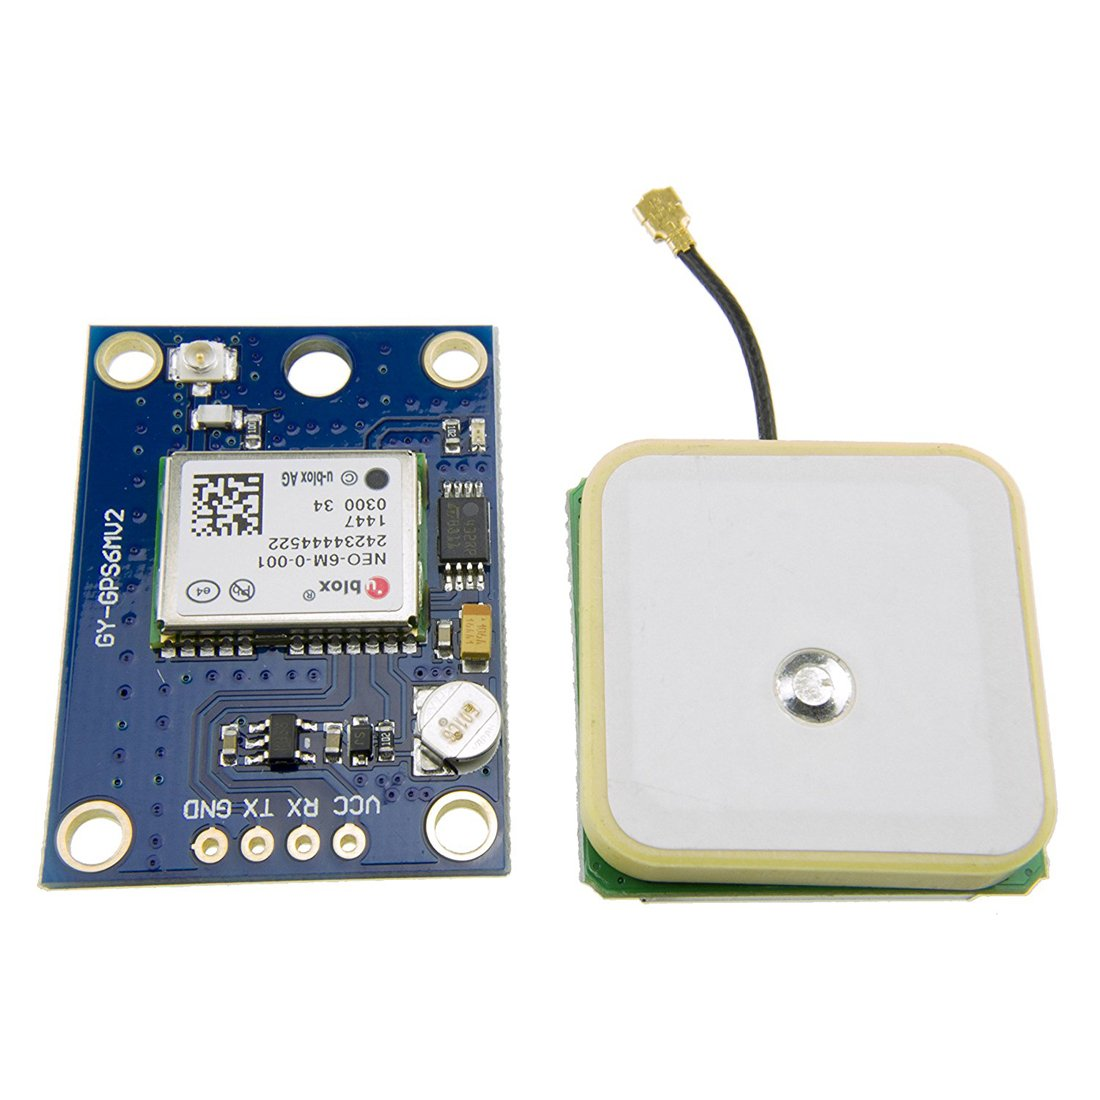 HiLetgo GY-NEO6MV2 Flight Controller NEO-6M APM 2.5 Flight Controller GPS Module With Super Strong Ceramic Antenna For Arduino EEPROM